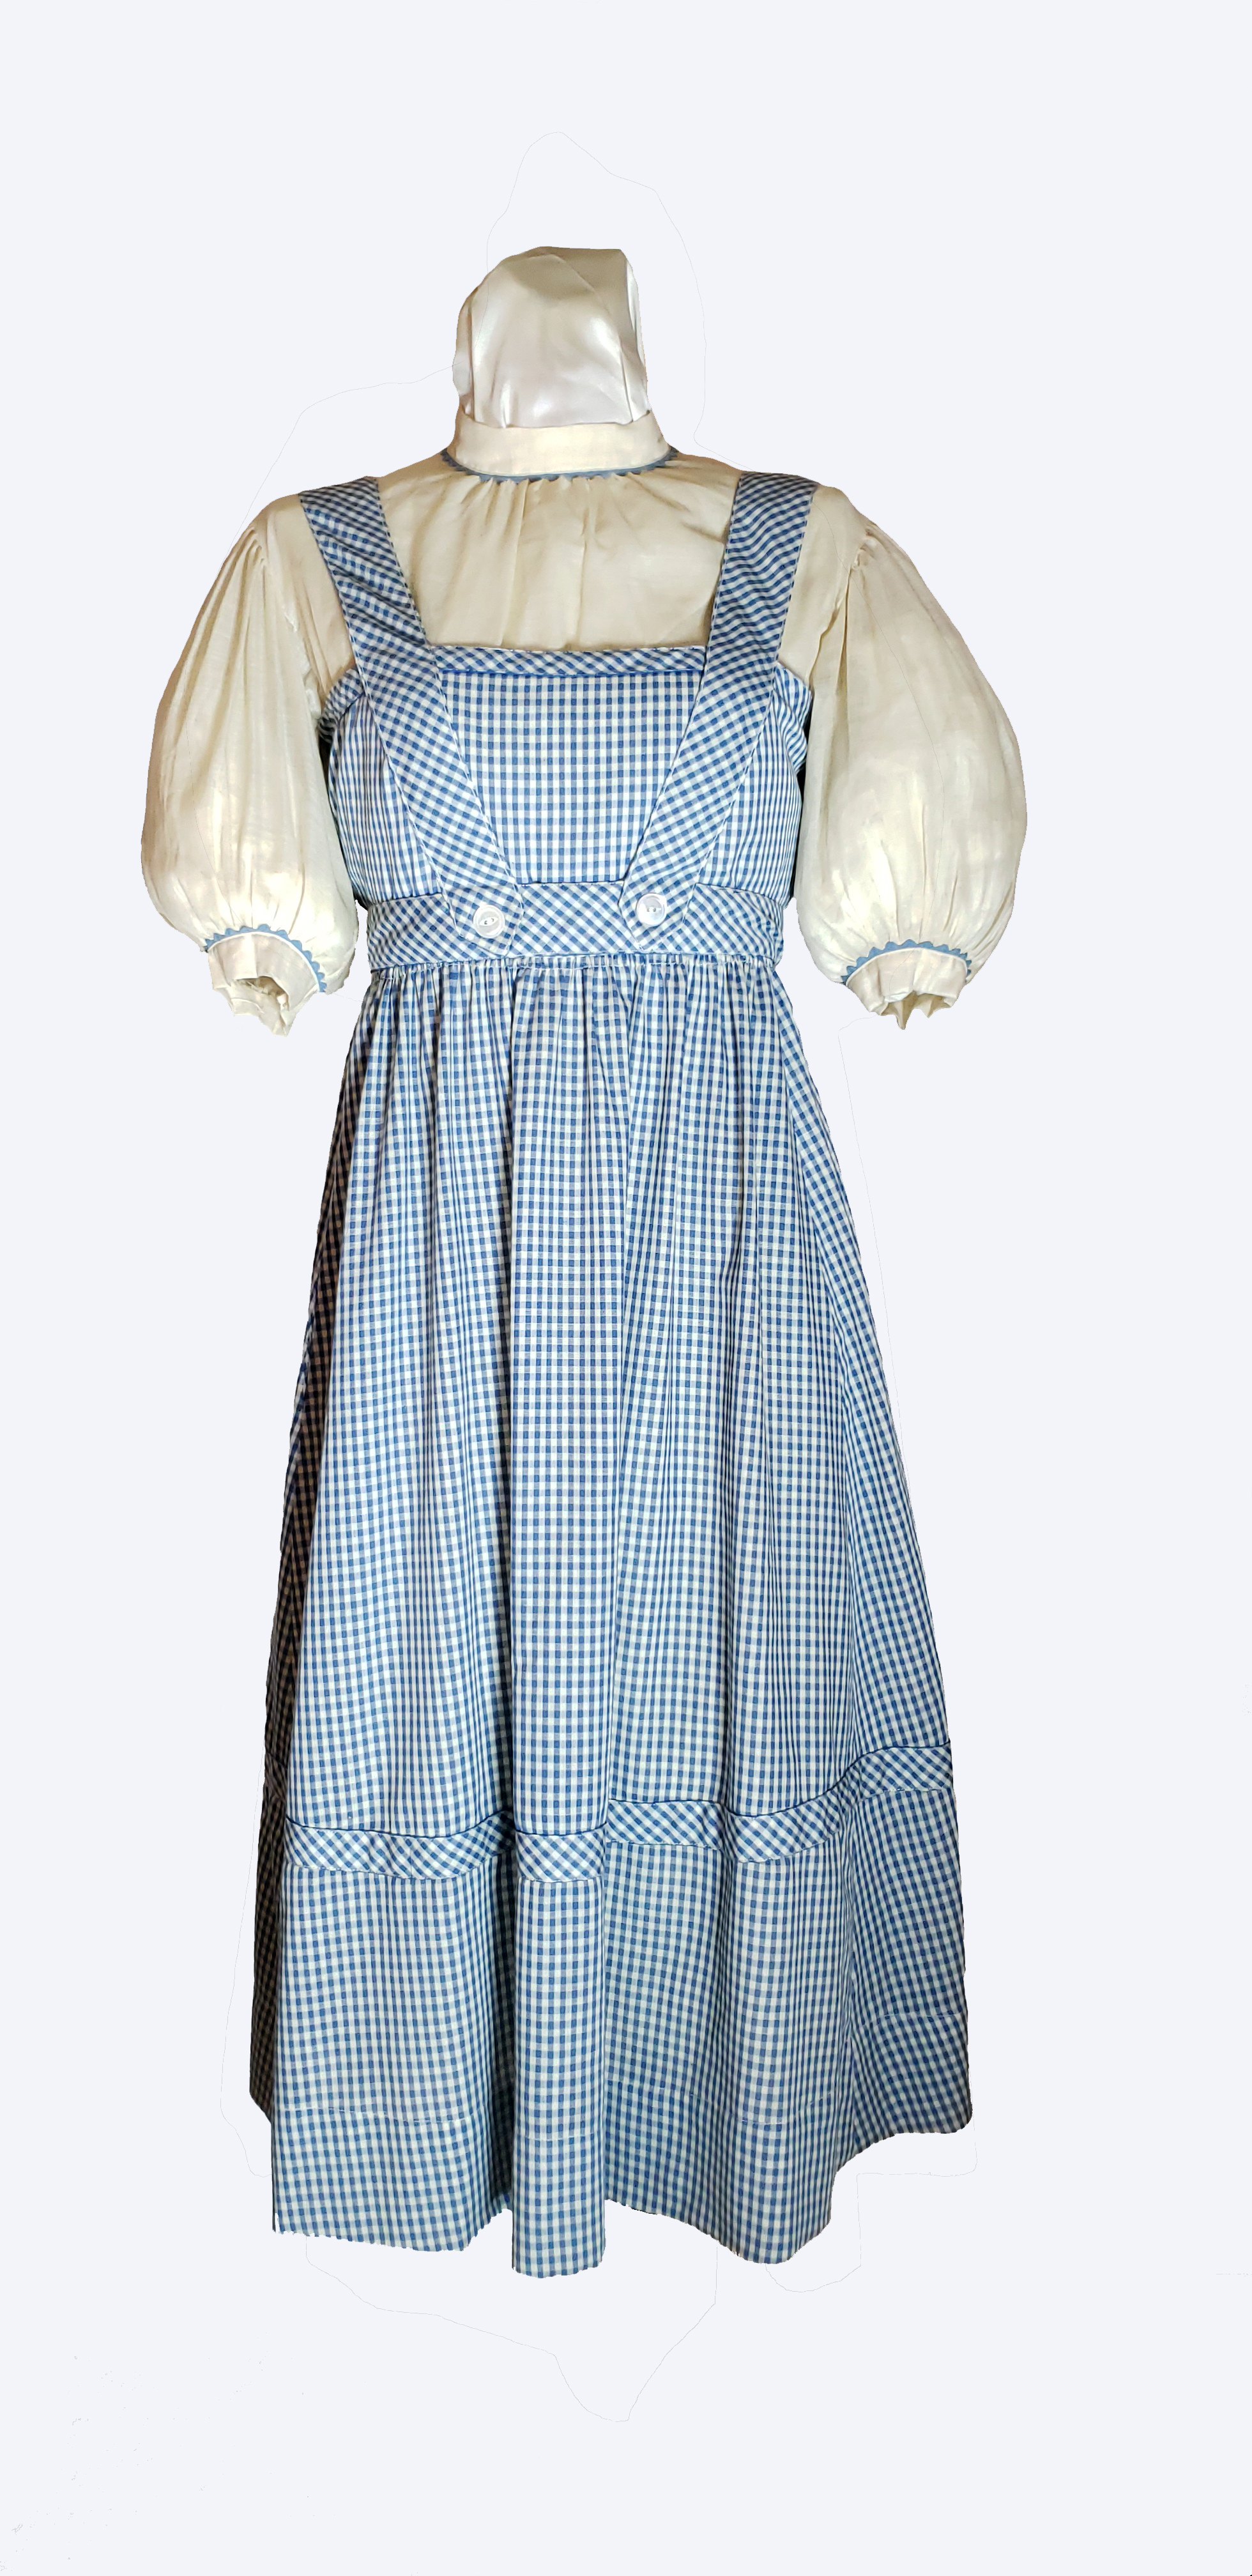 https://www.motionpictureartifacts.com/wp-content/uploads/2018/08/Dorothy-Pinafore.jpg